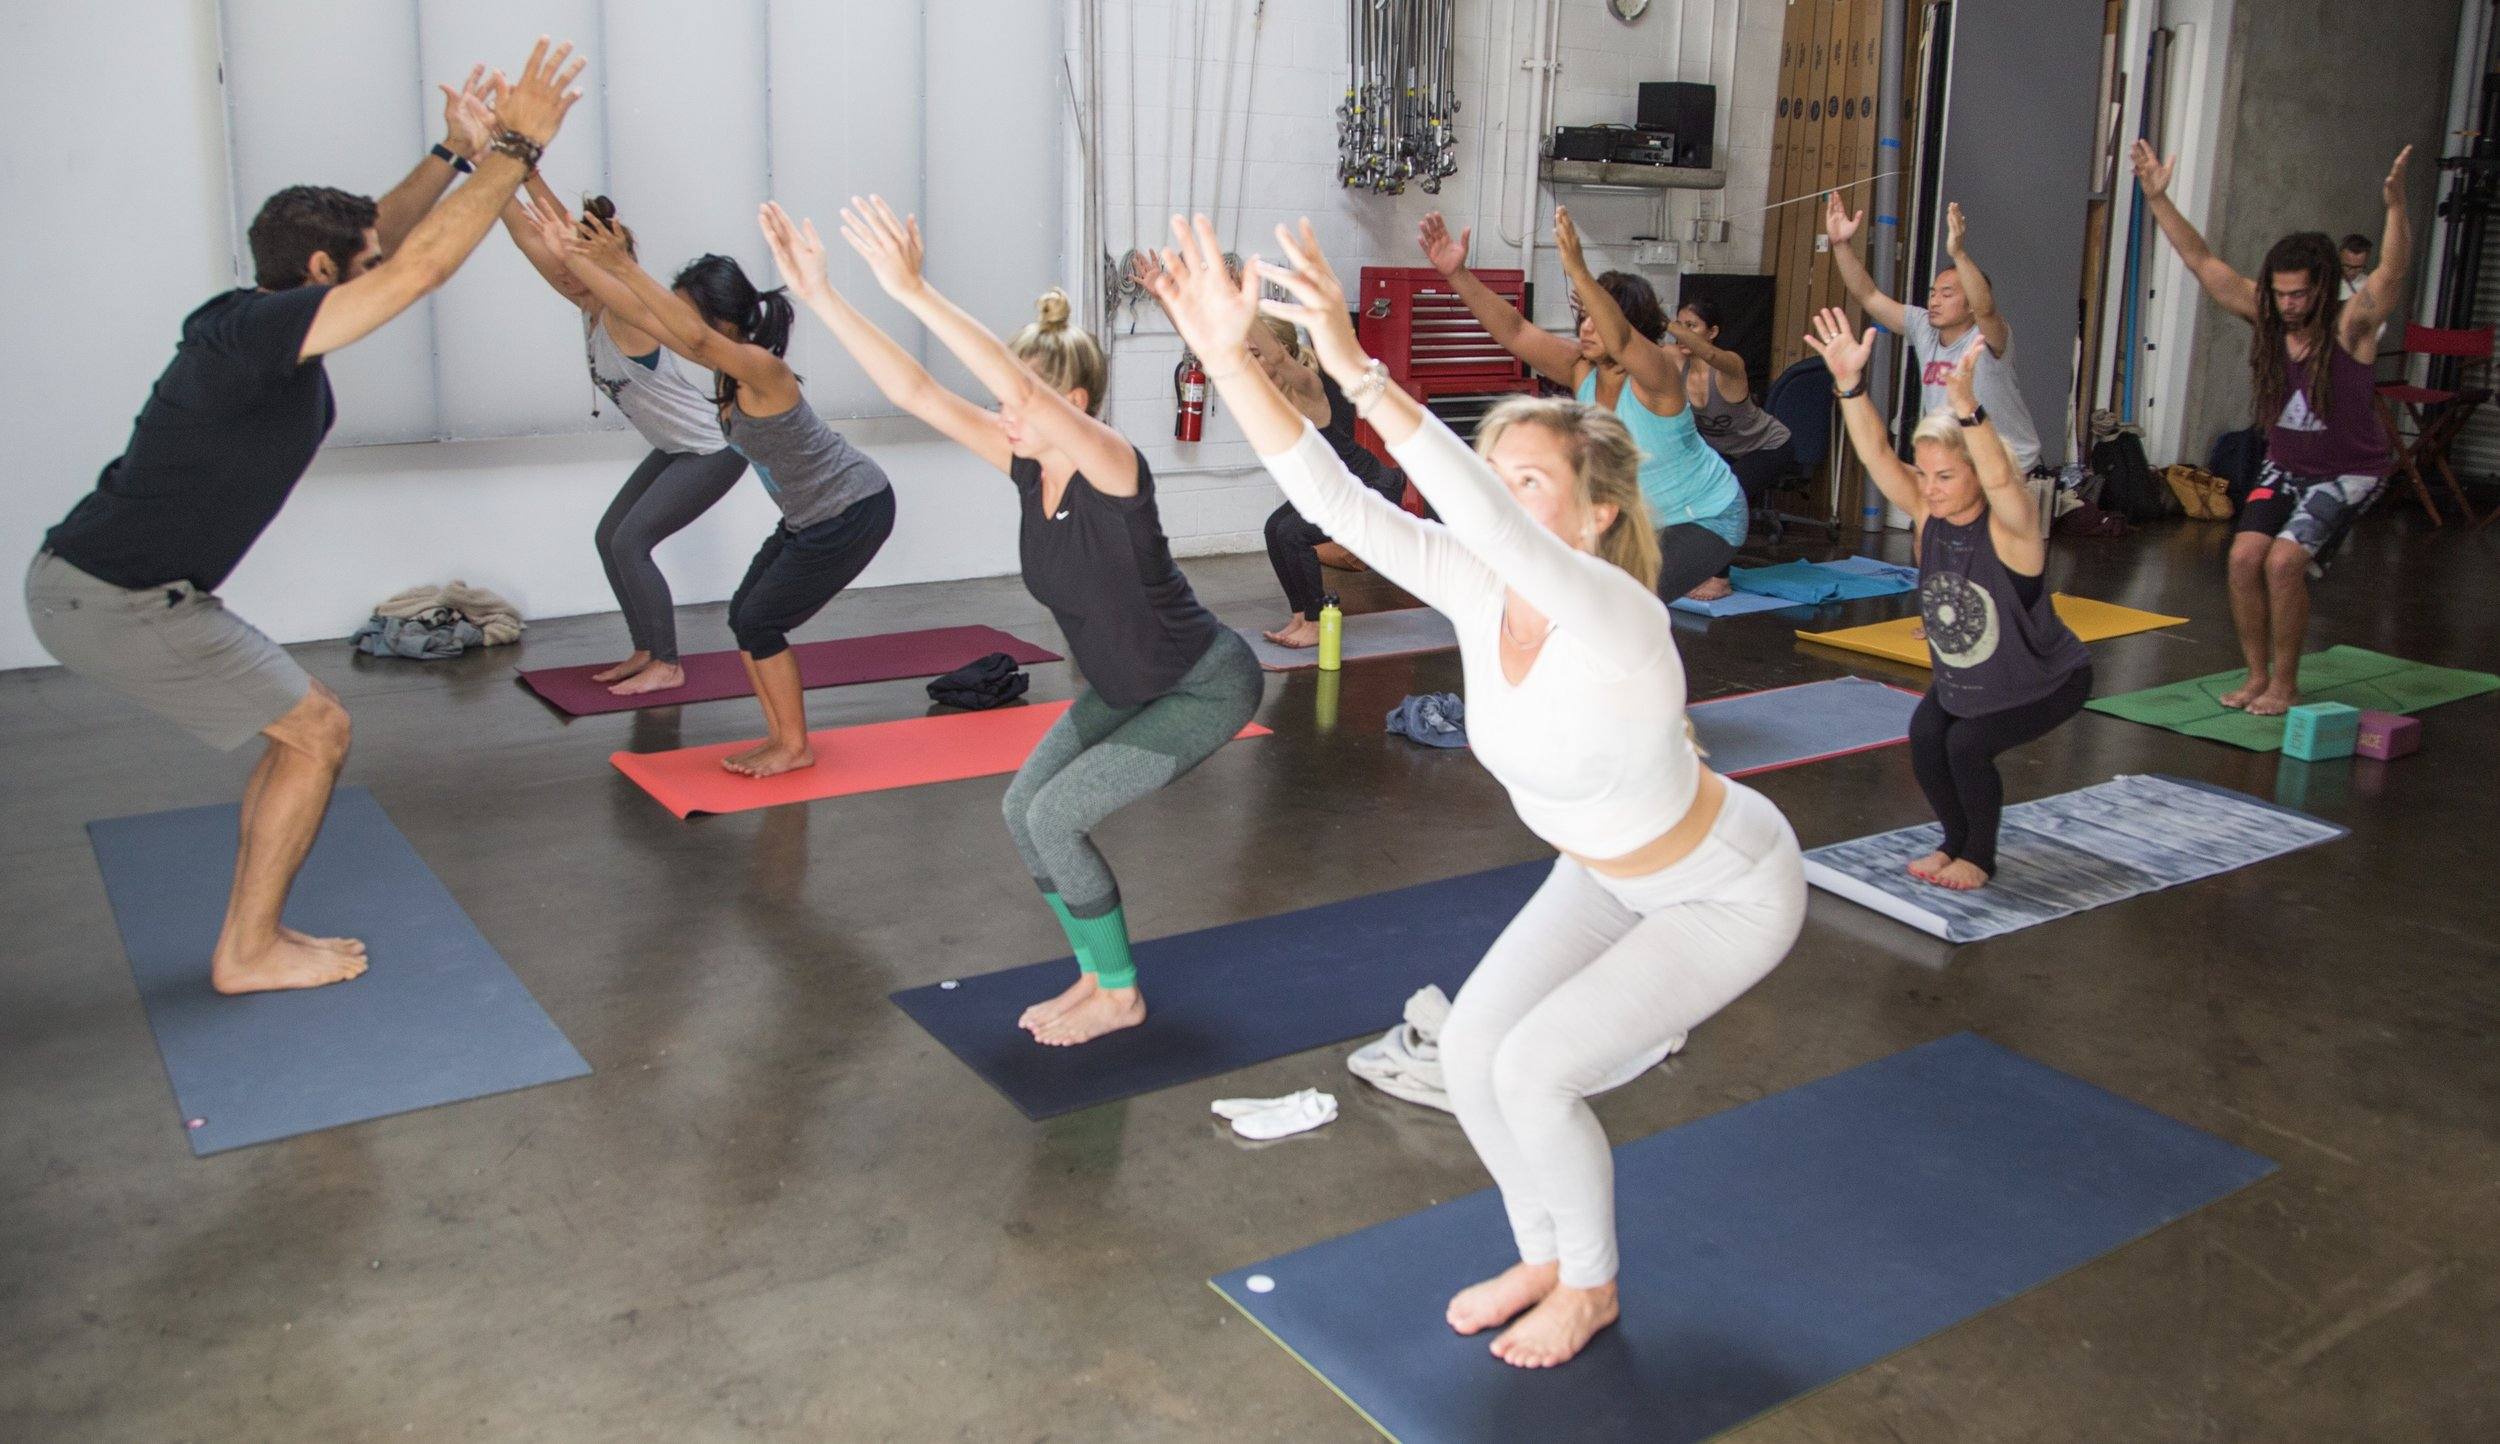 Here I am, honored to be leading a group class as part of Yoga Kitchen.